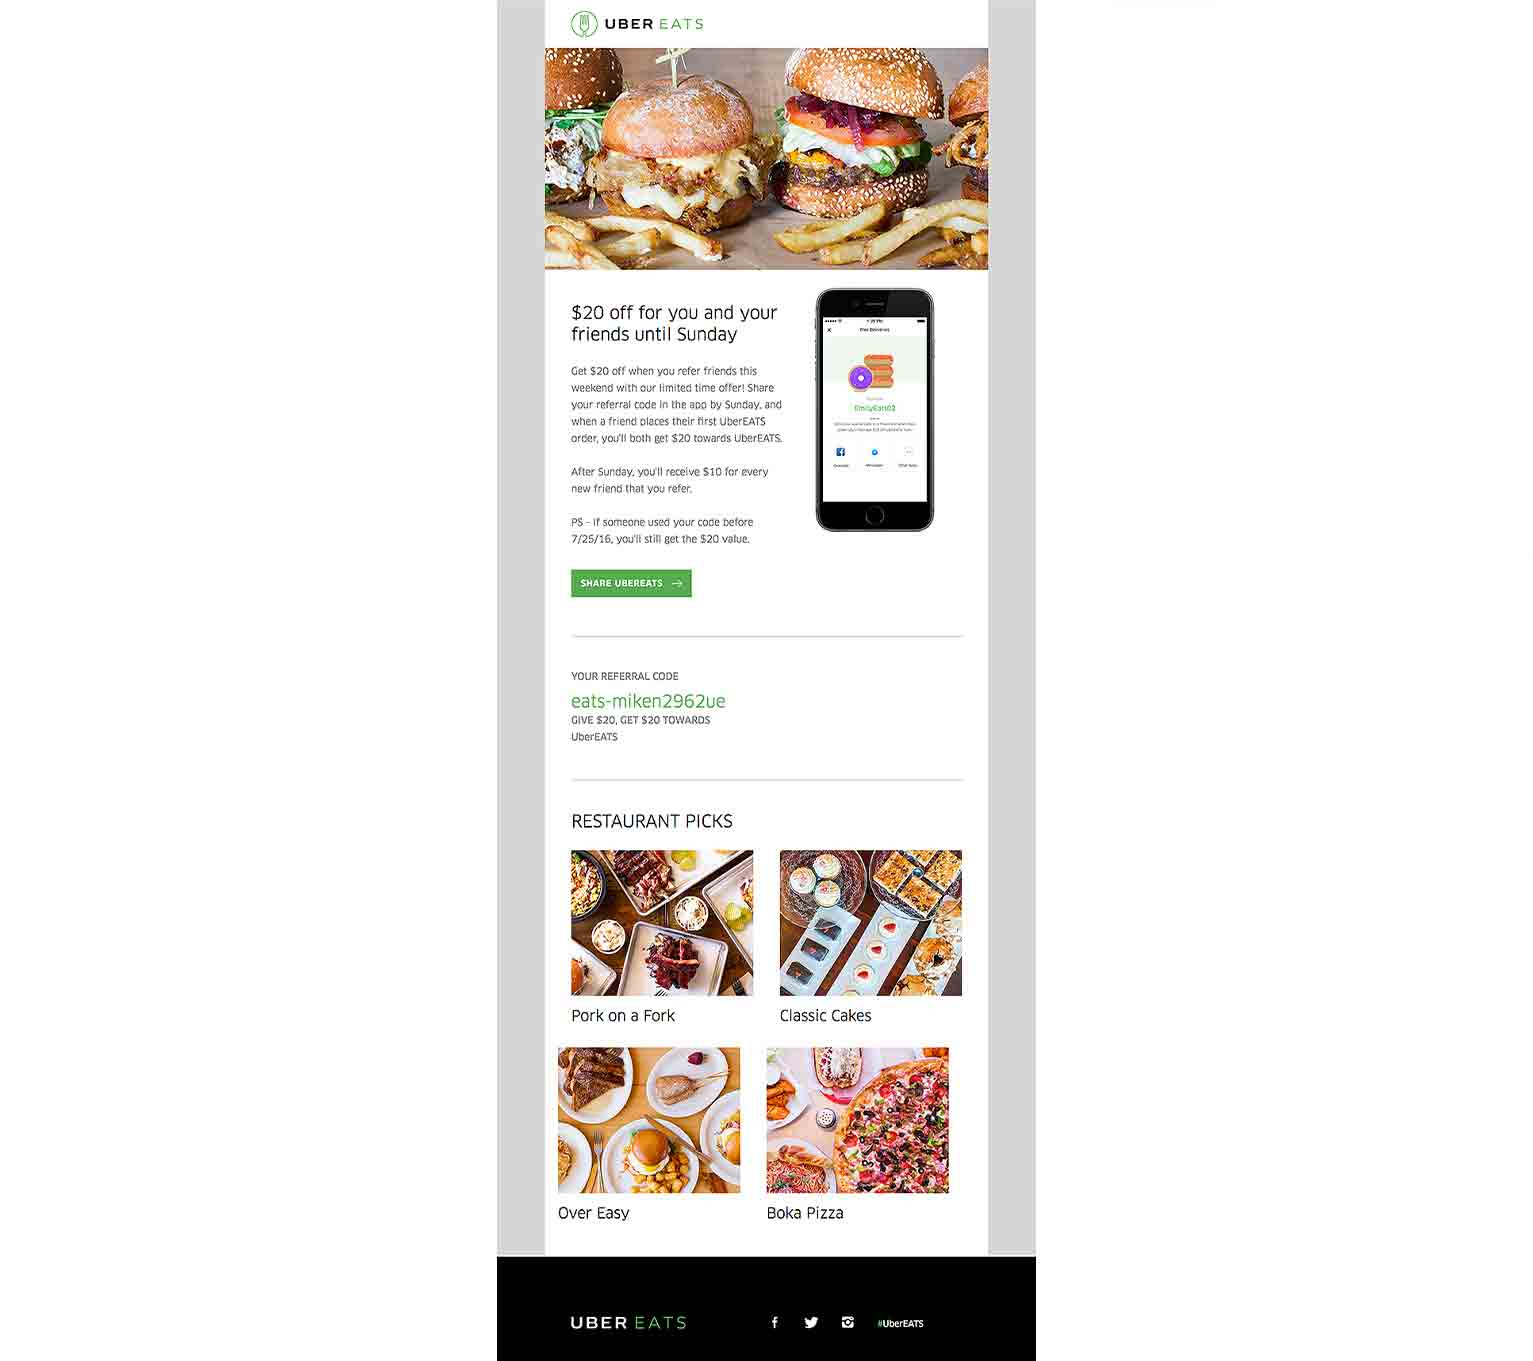 The Uber Eats referral program lets brand advocates and their friends earn $20 off for a successful referral.